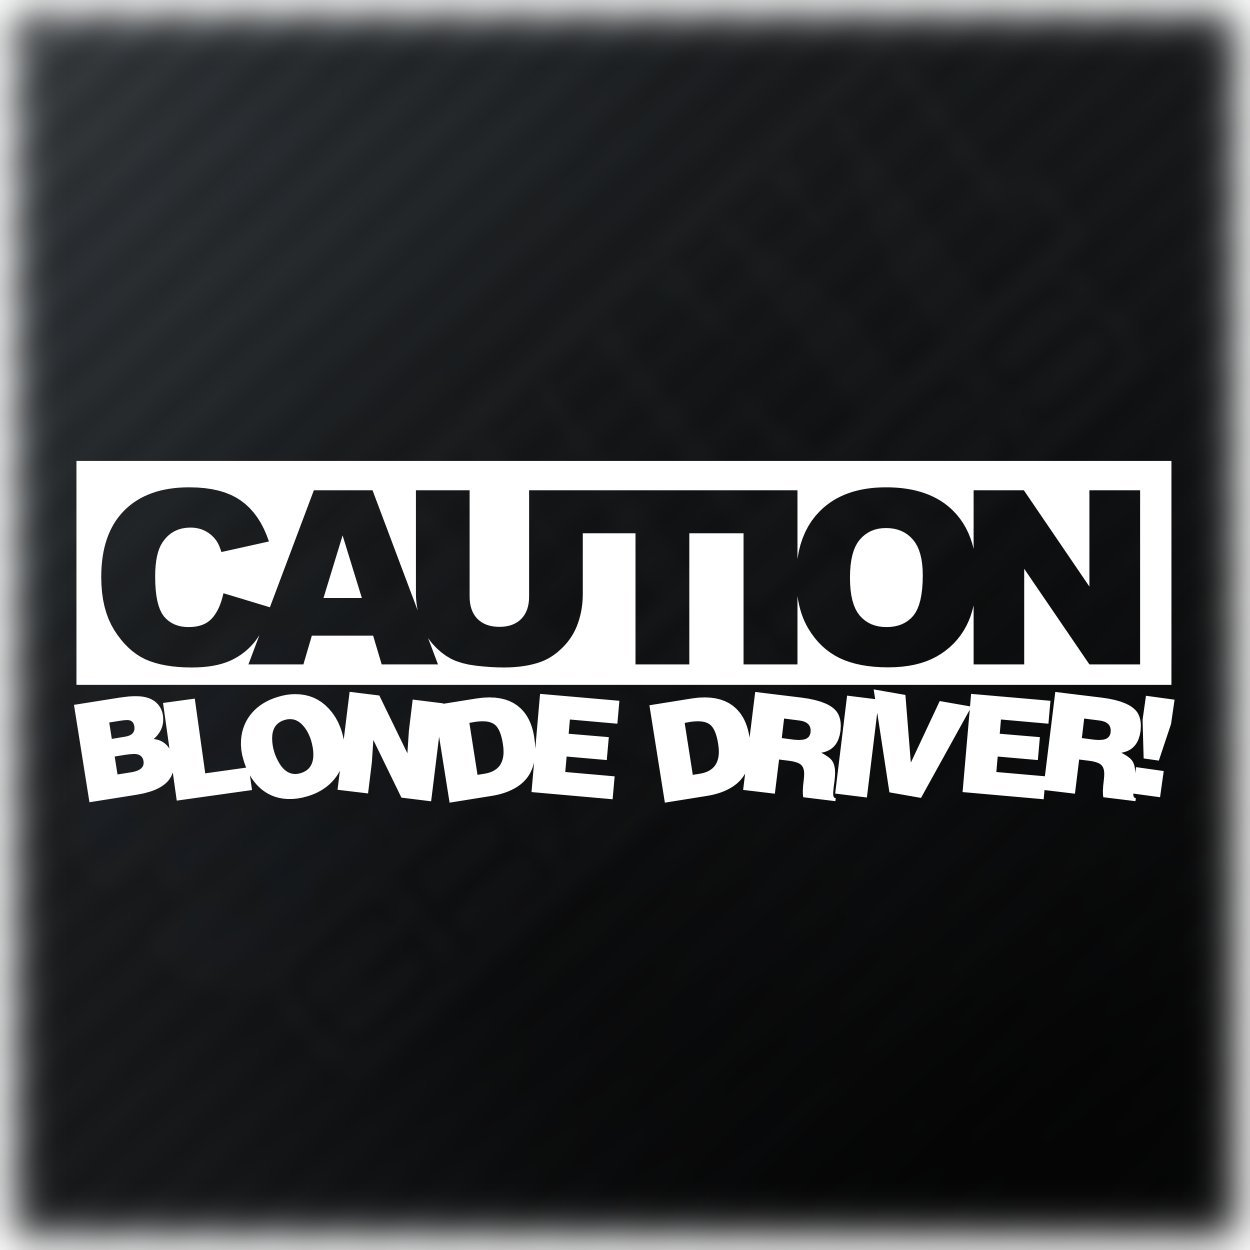 Caution blonde driver sticker funny girly car window bumper vinyl decal amazon co uk car motorbike